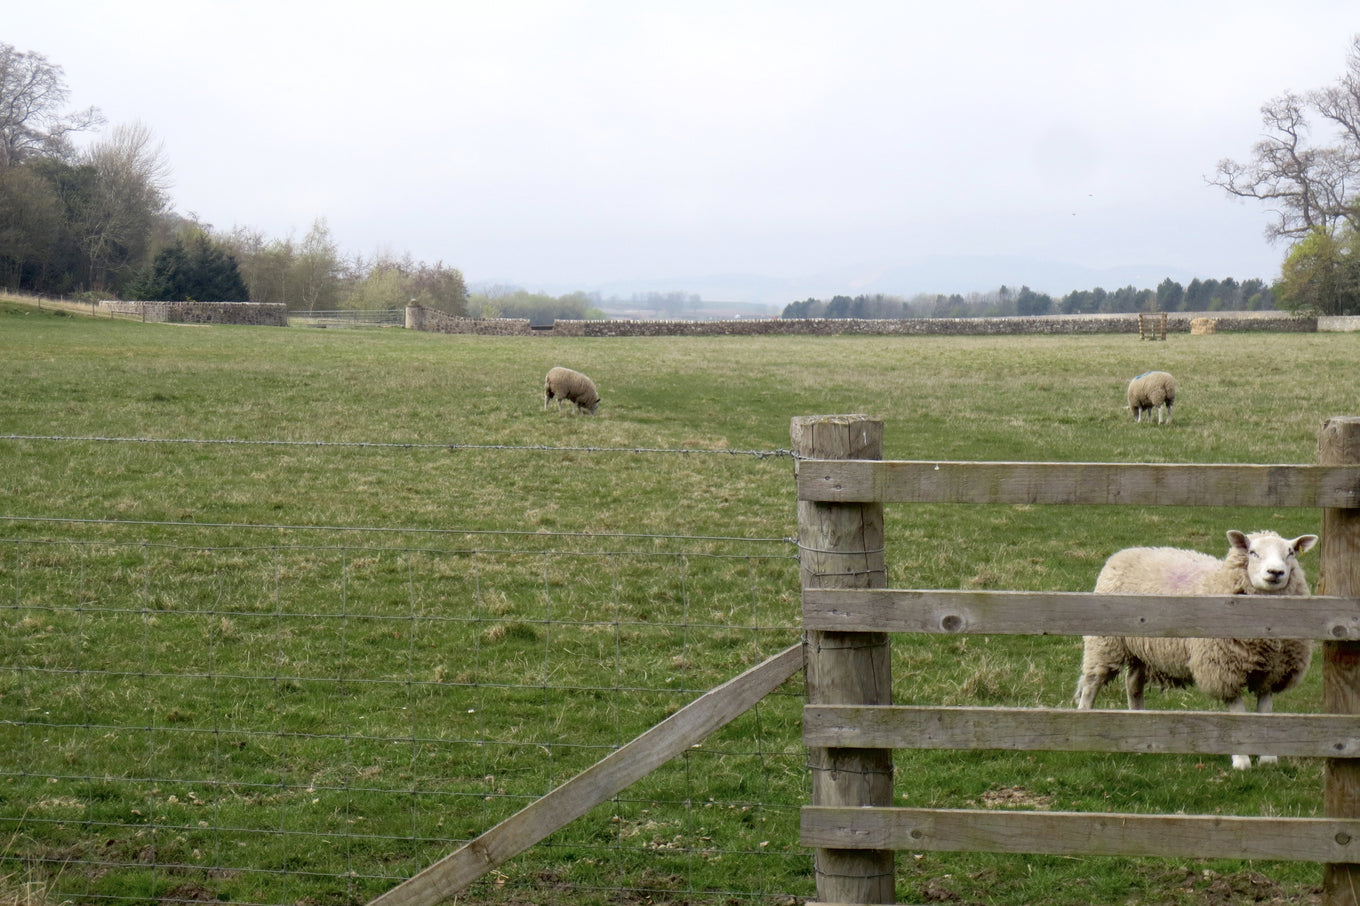 Sheep at Balgove Larder farm in St. Andrews, Scotland